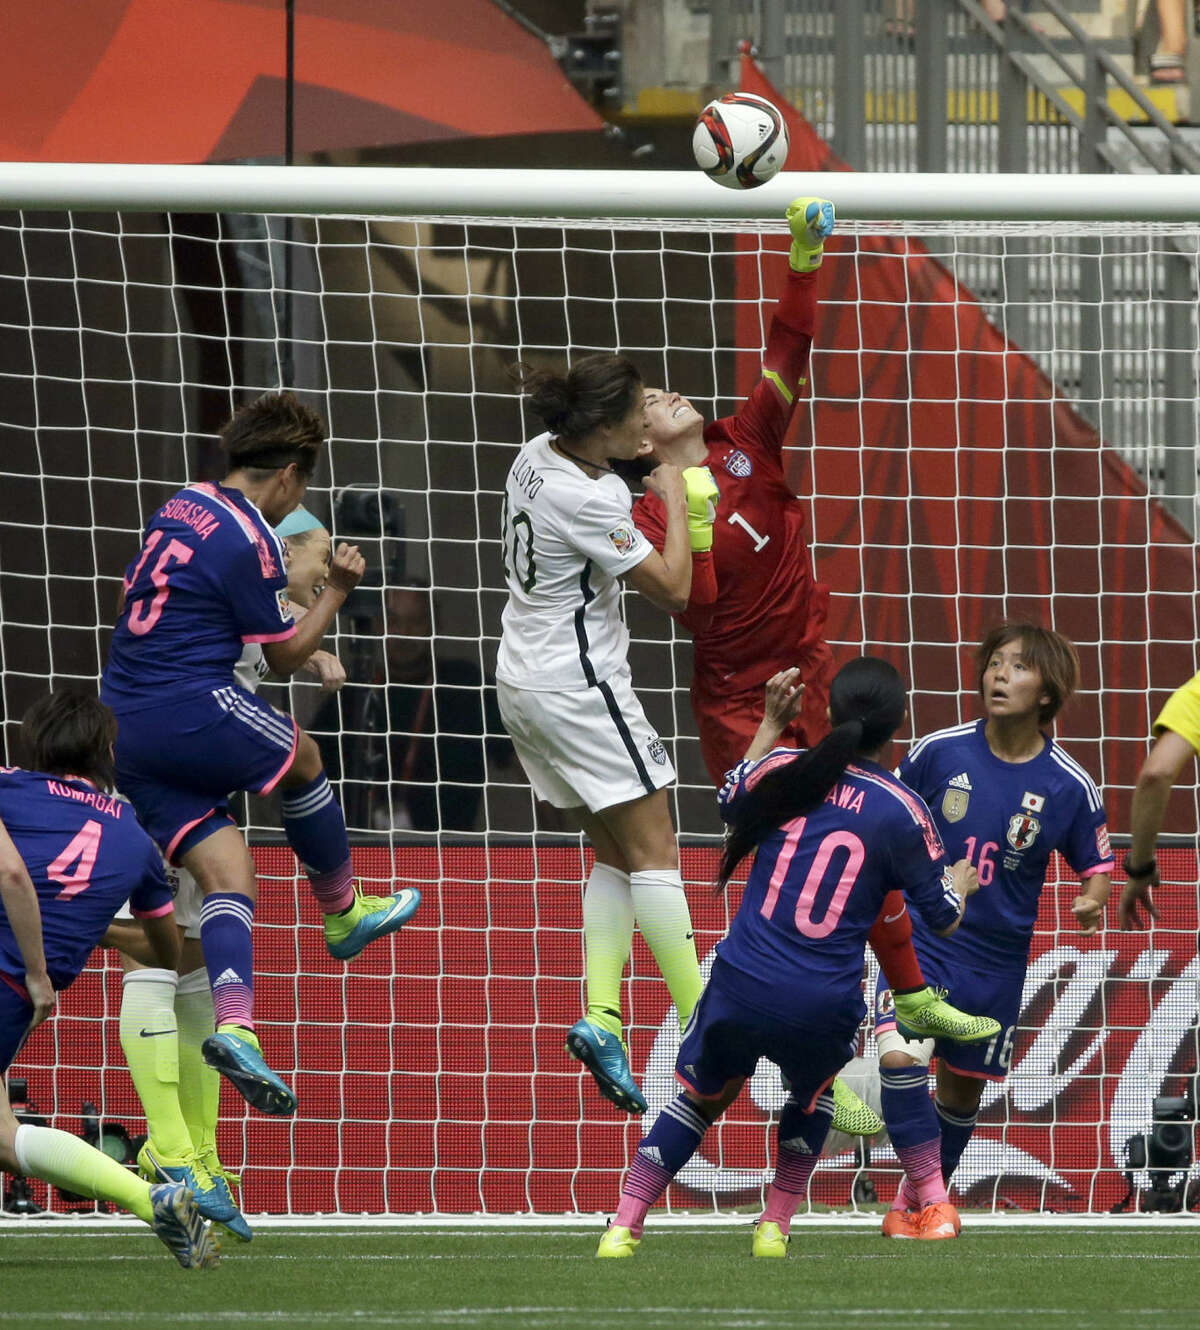 United States goalkeeper Hope Solo (1), center, punches away a shot as Japan's Mana Iwabuchi (16) and Homare Sawa (10) look on during the second half of the FIFA Women's World Cup soccer championship in Vancouver, British Columbia, Canada, Sunday, July 5, 2015. (AP Photo/Elaine Thompson)